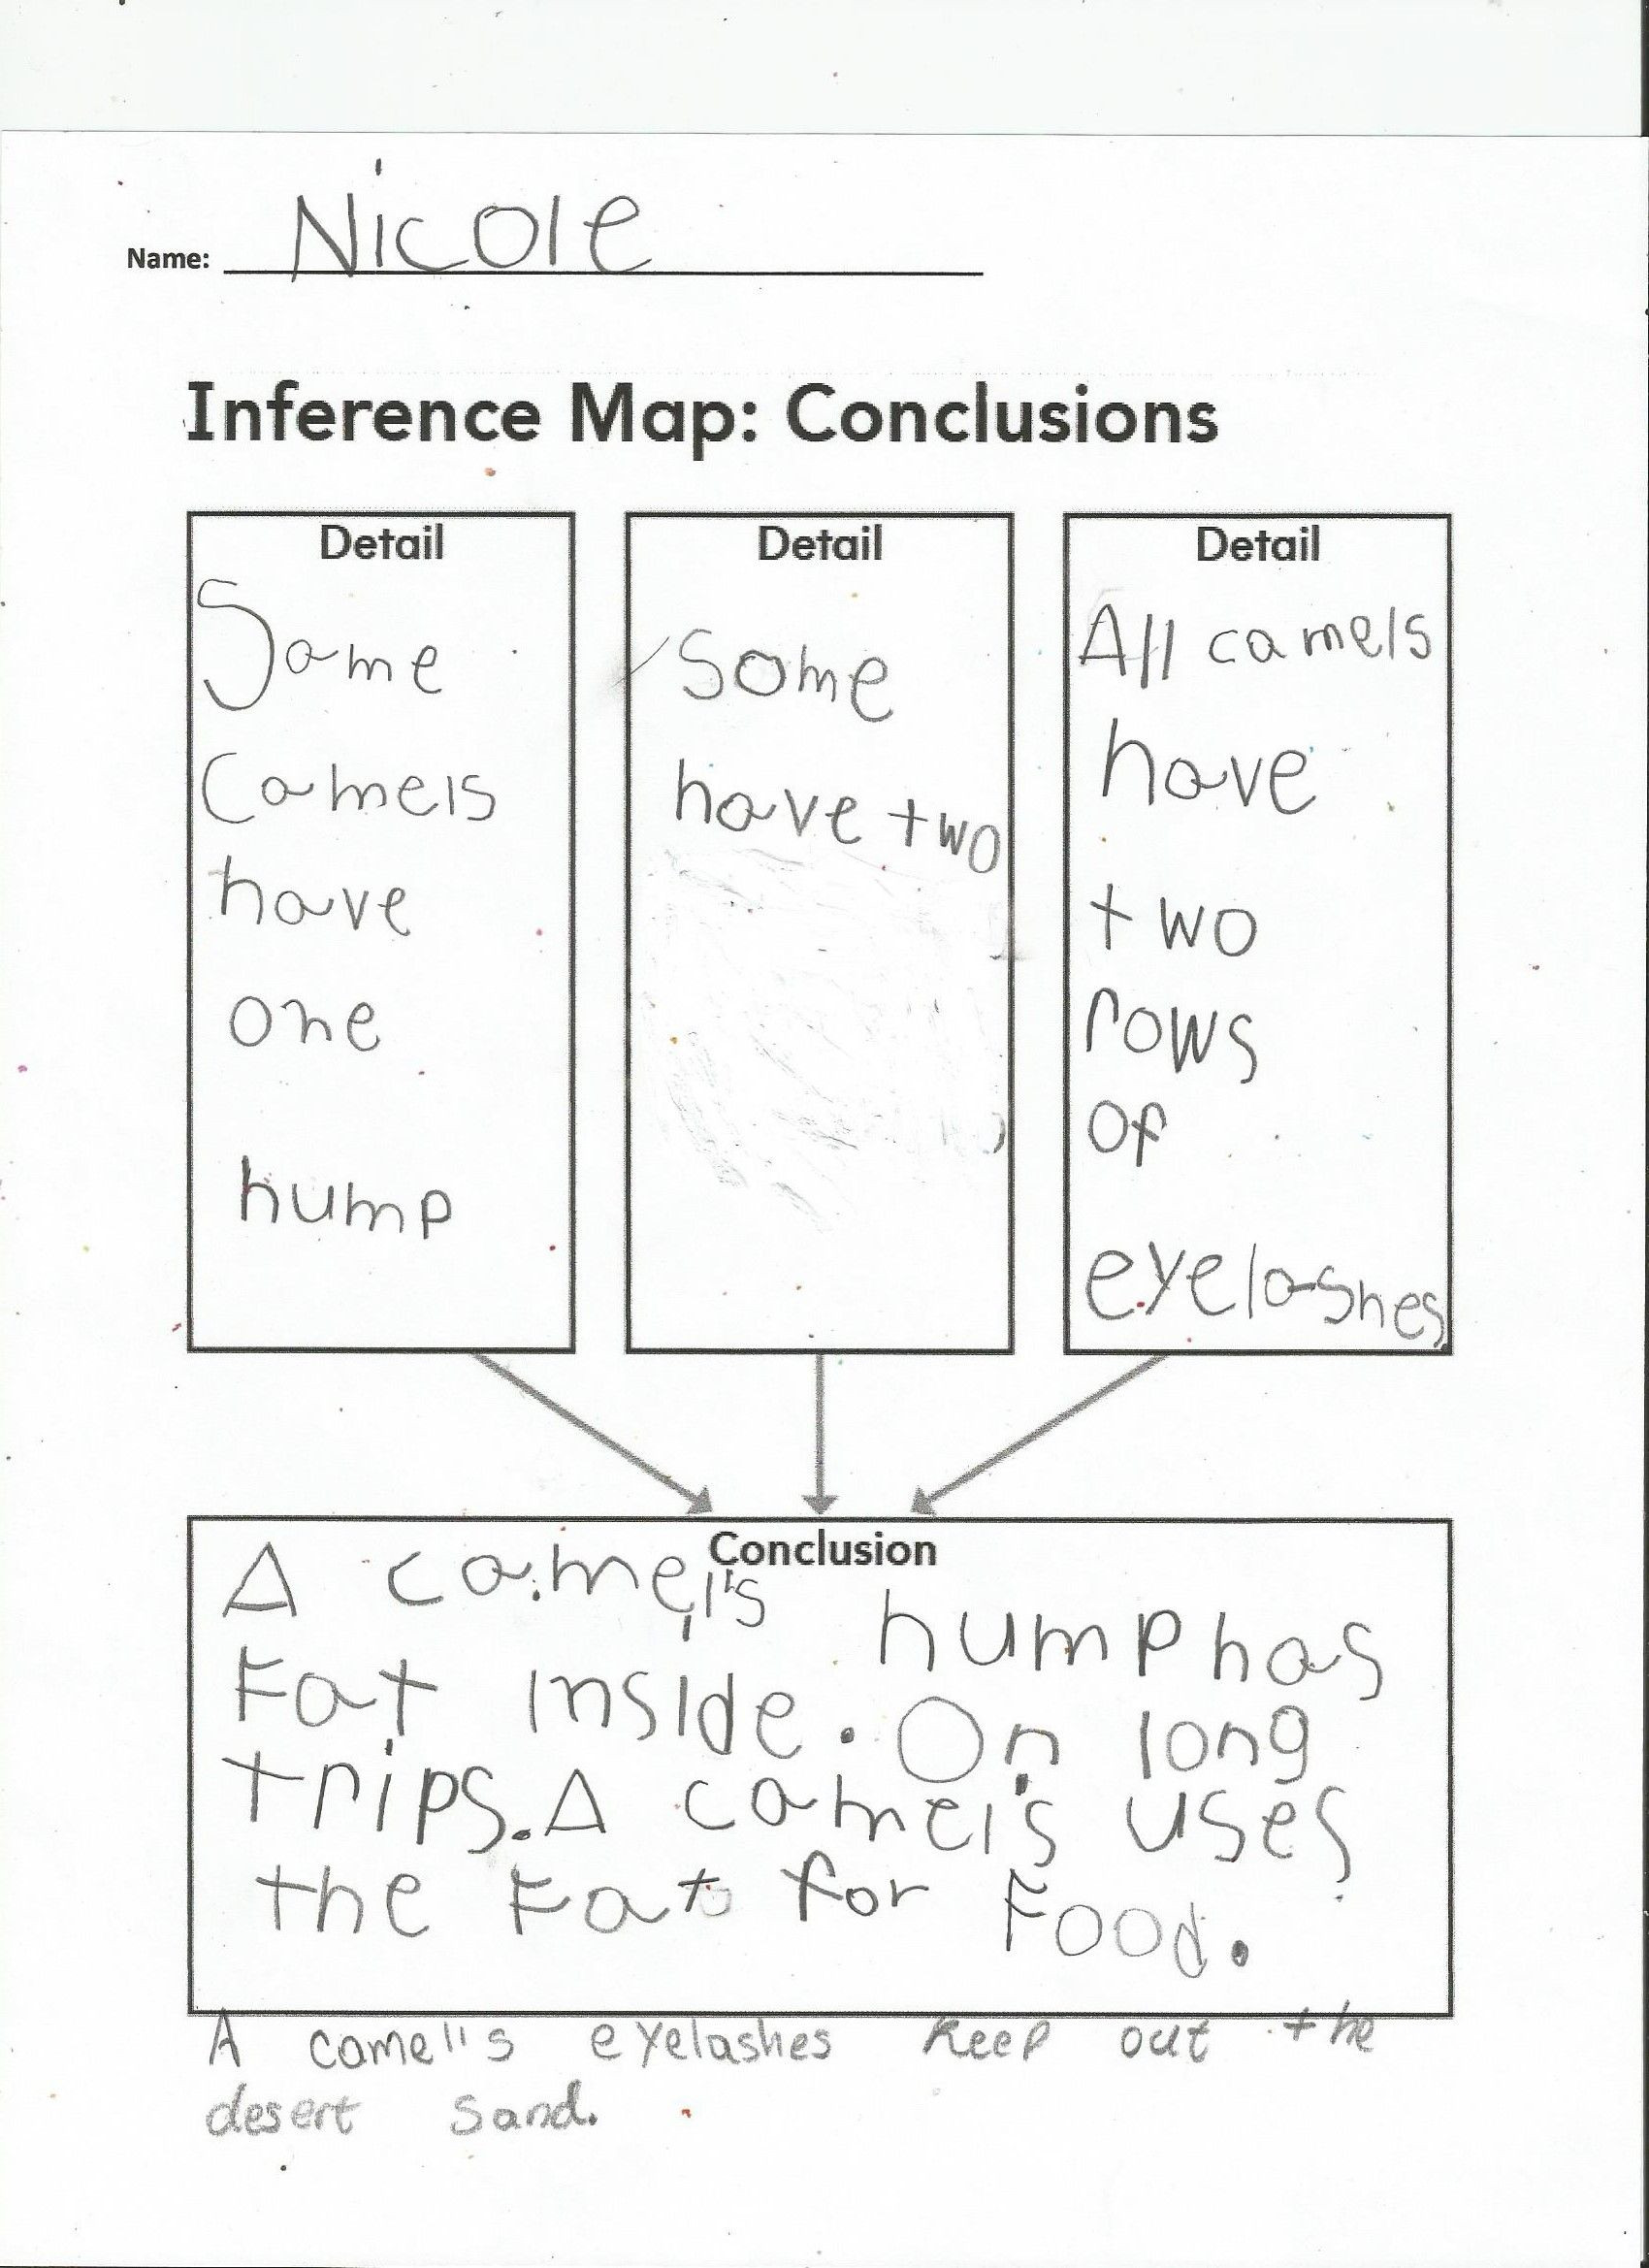 Drawing Conclusions Worksheets 2nd Grade Amazing Animals Inference Map Conclusions